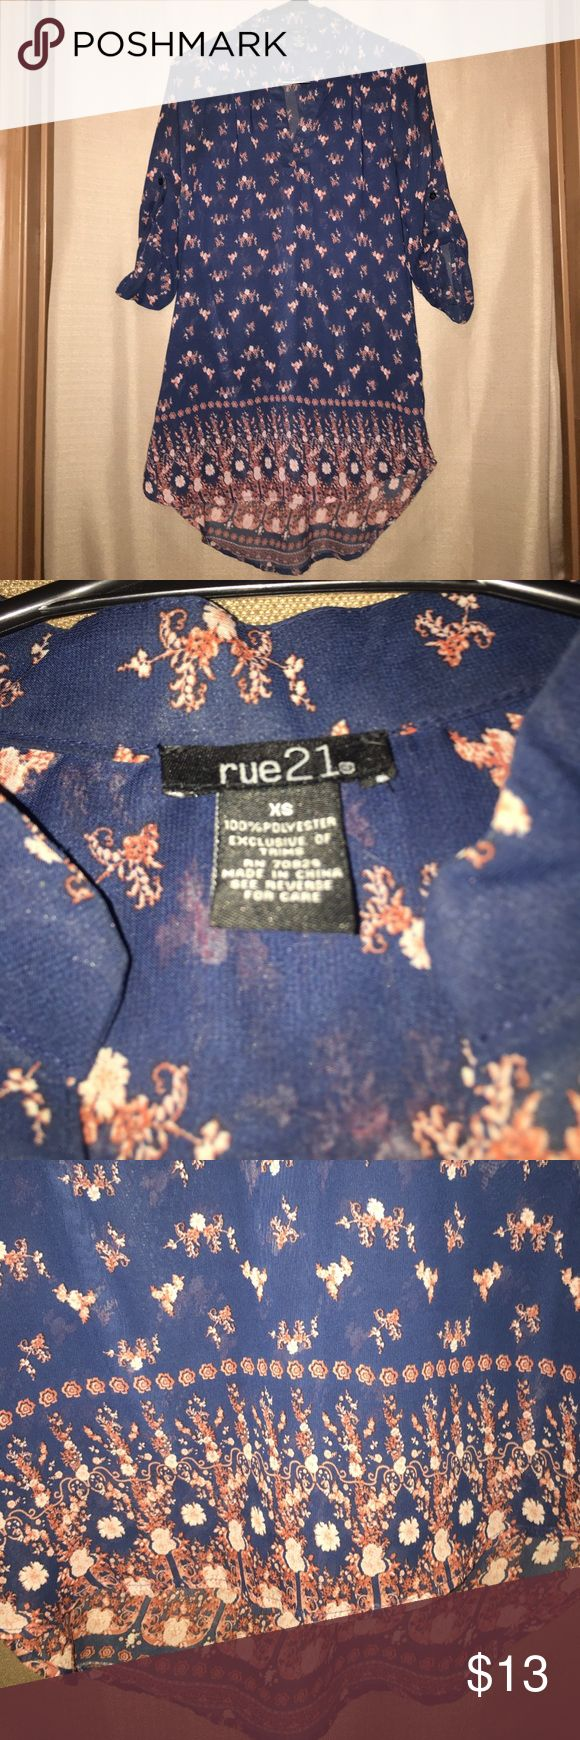 Rue 21 floral print tunic 100% polyester, great to pair with leggings. Worn once, in excellent condition. Rue 21 Tops Tunics